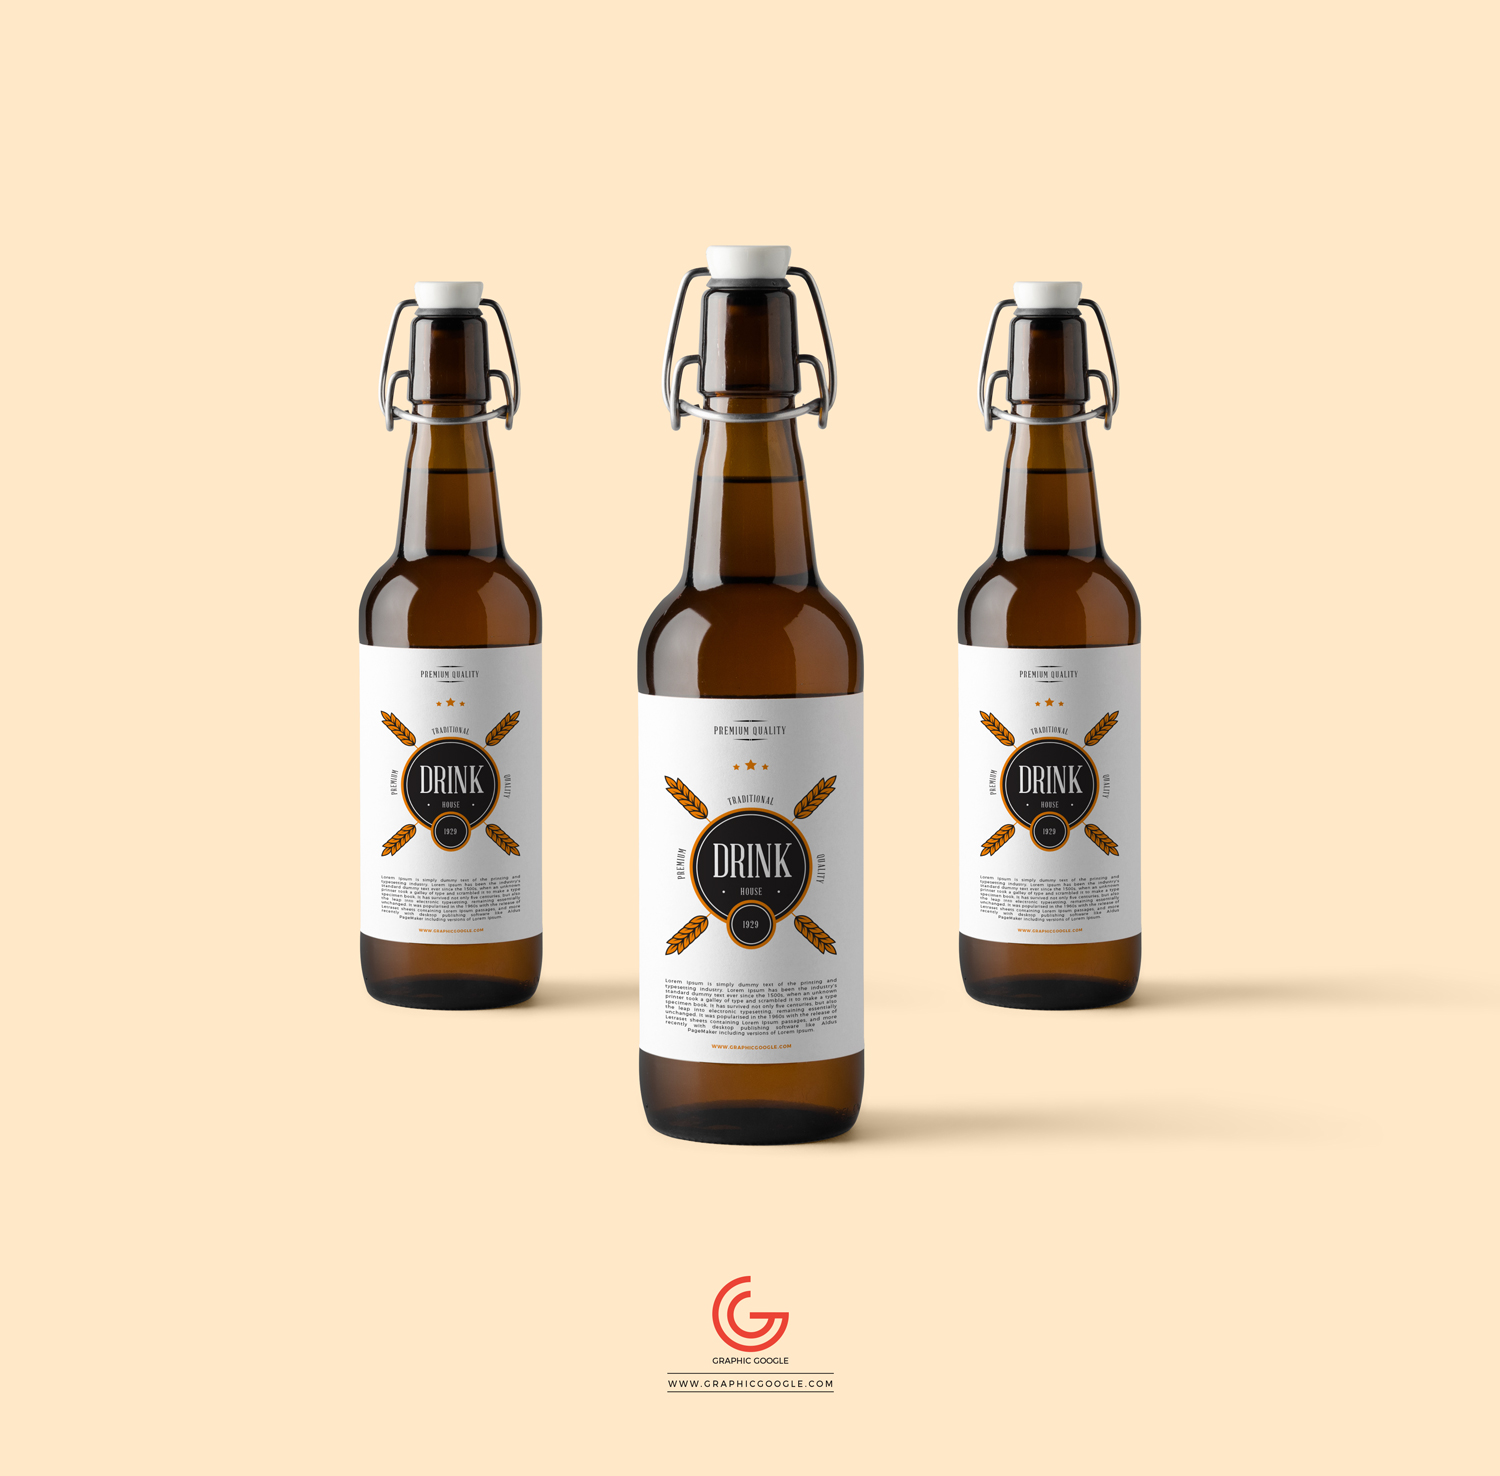 Free-Beverage-Bottle-Mockup-PSD-2018